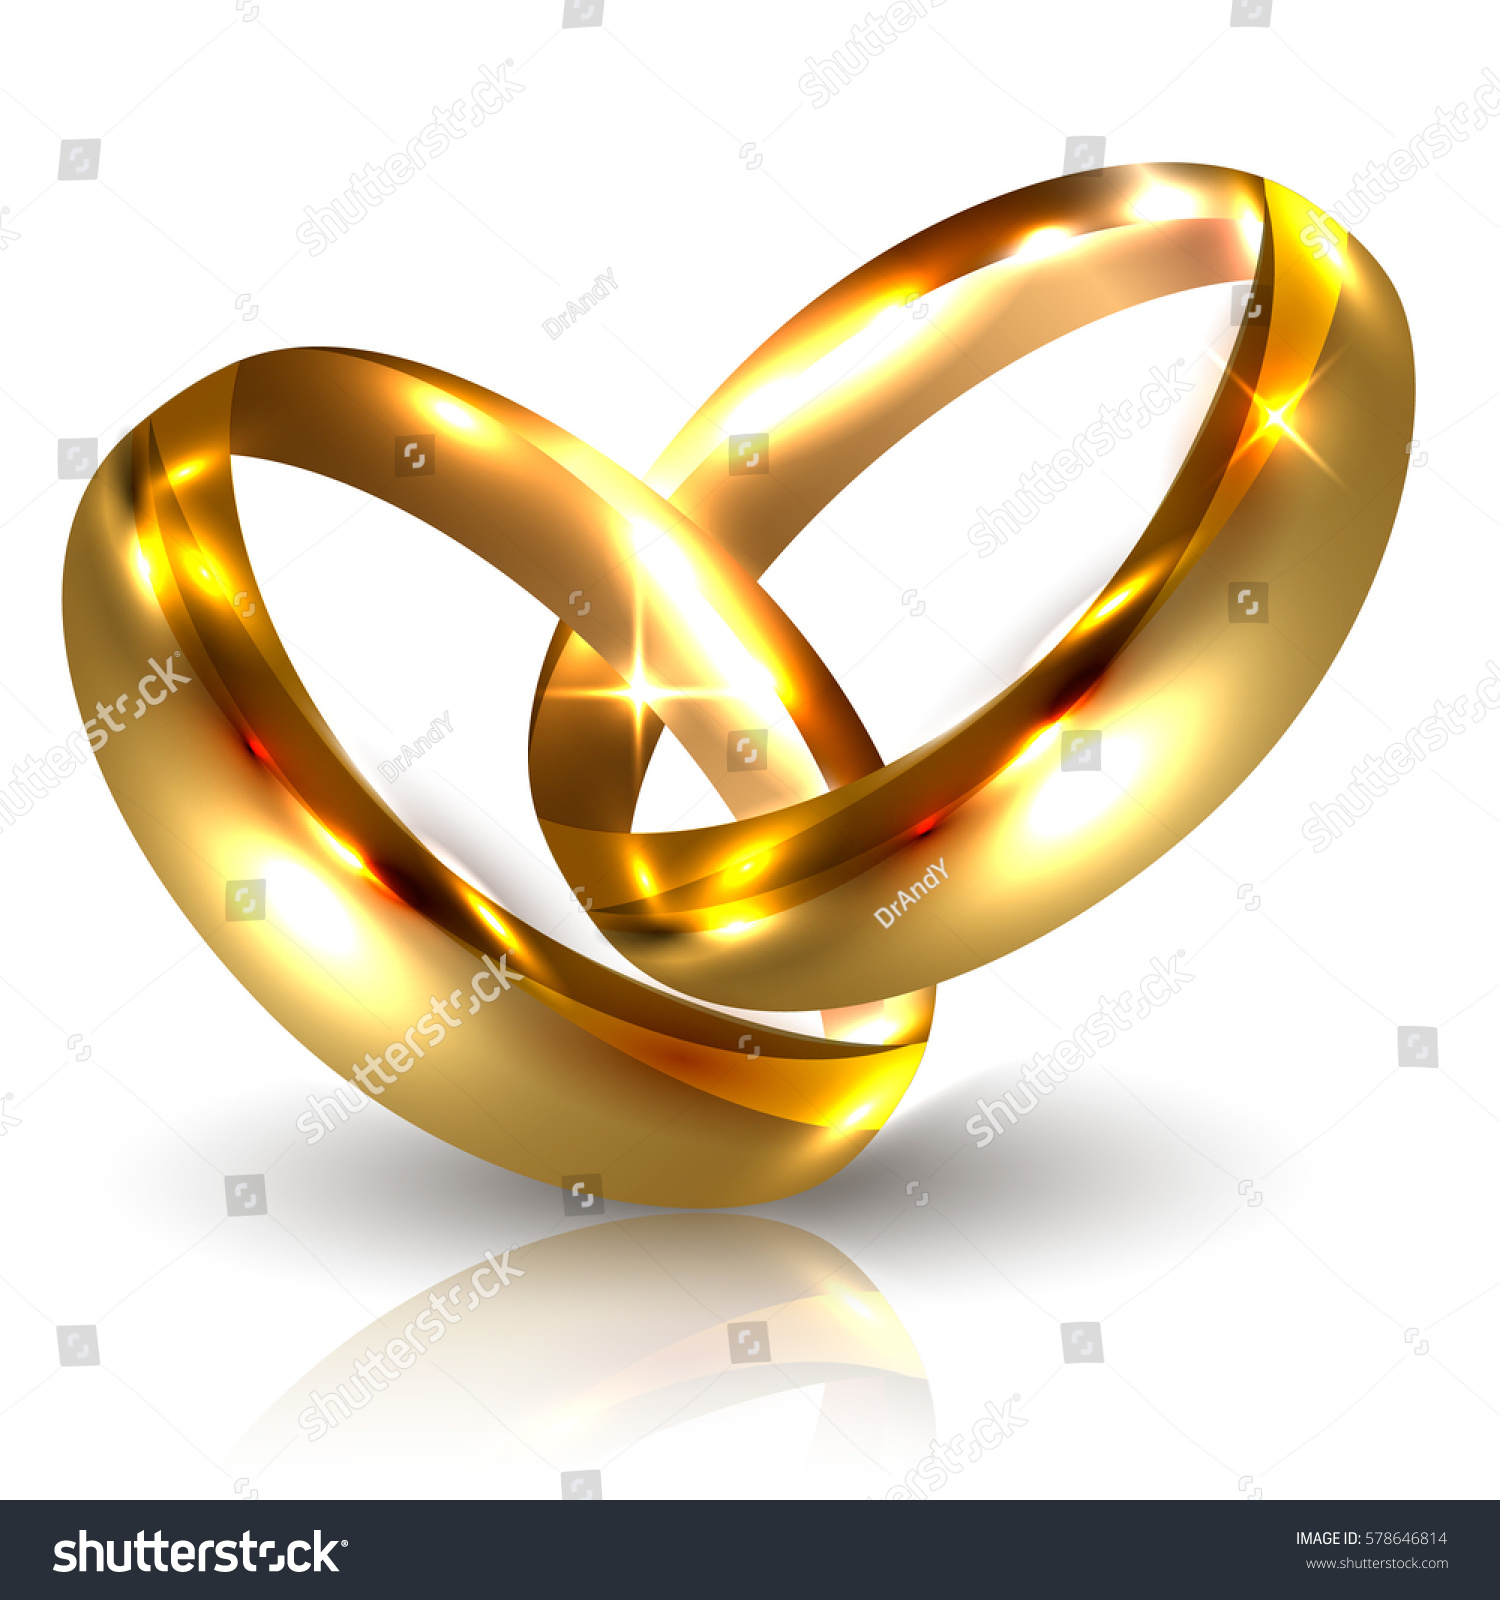 hd wedding widescreen romantic rings htm wallpaper gold pair golden